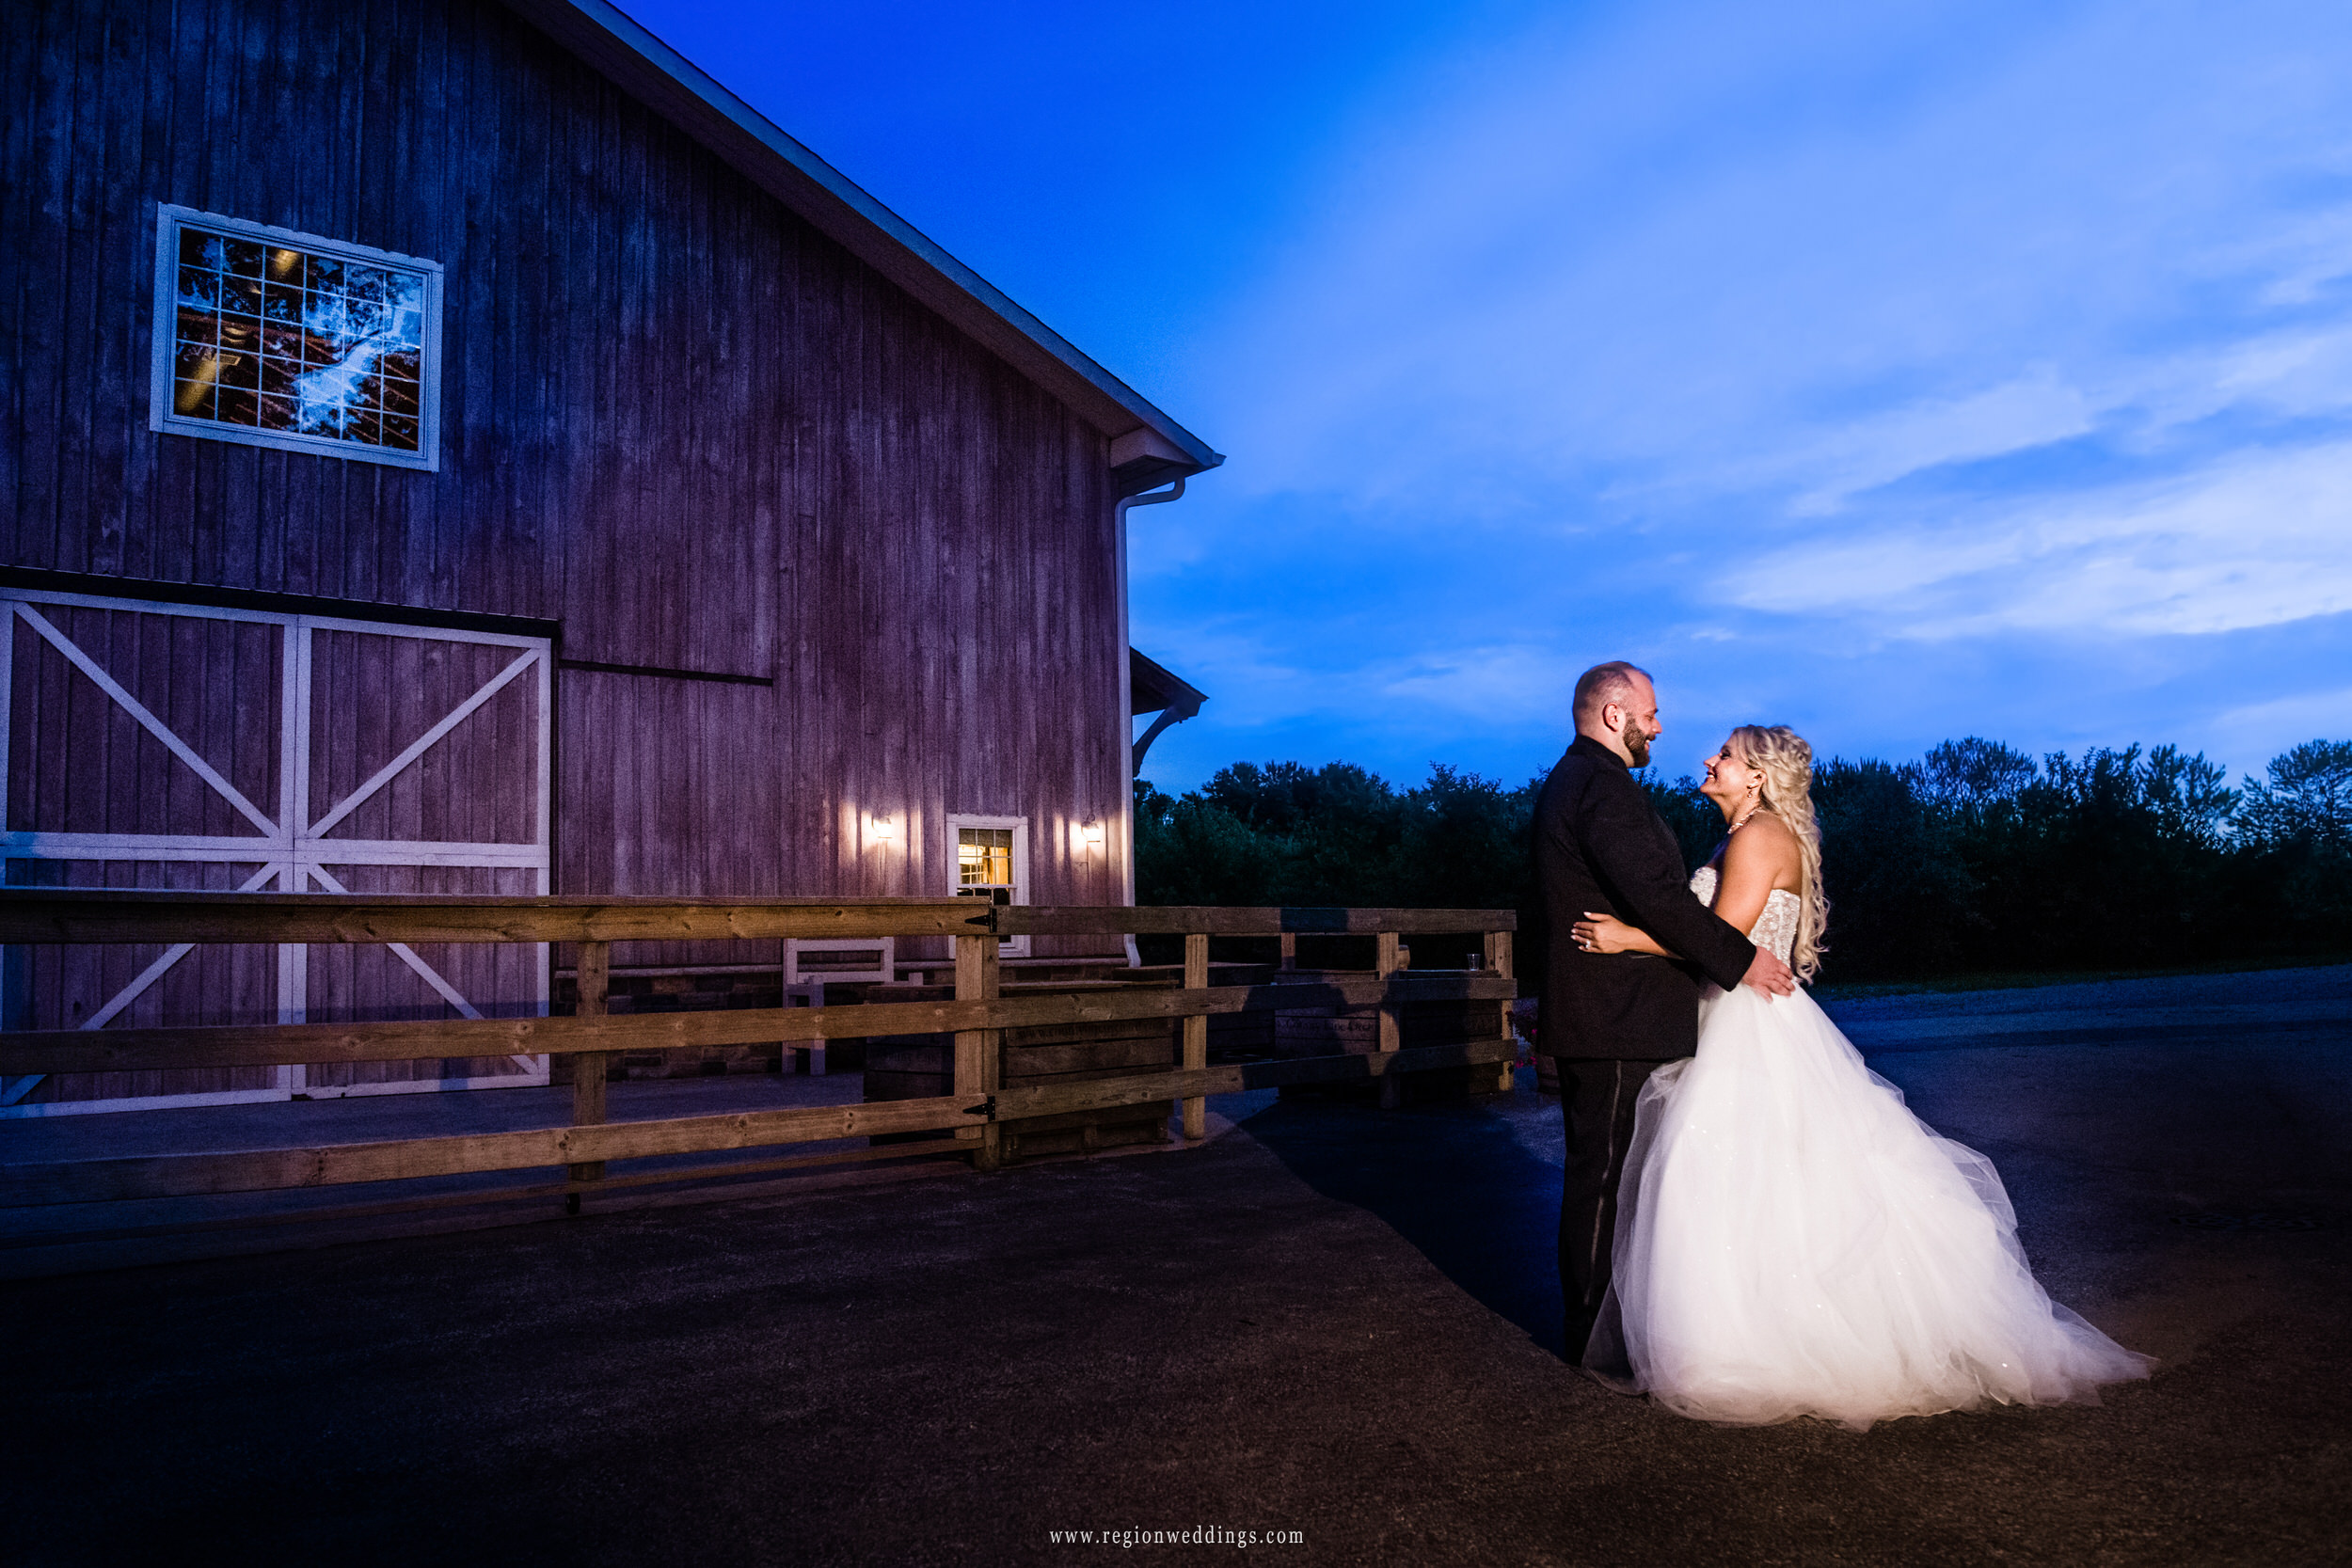 Night portrait of the bride and groom at County Line Orchard barn wedding venue.